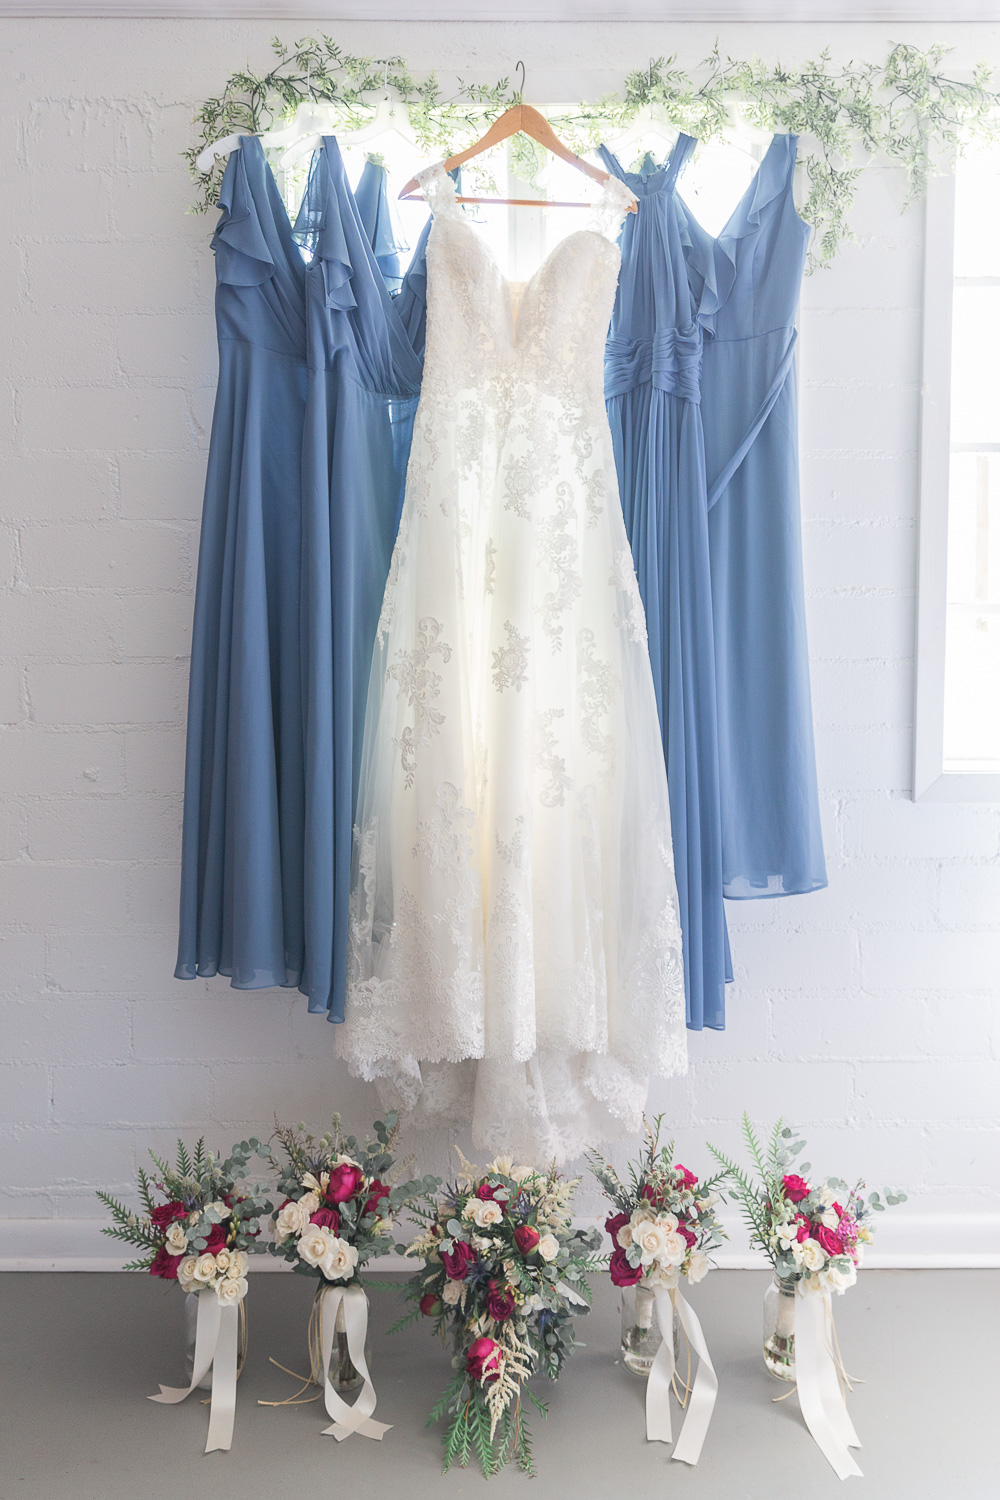 Annie Elise Photography | White Chapel Wedding | Bride detail  | Dusty Blue Wedding Color | Bridesmaids Flowers and Dresses